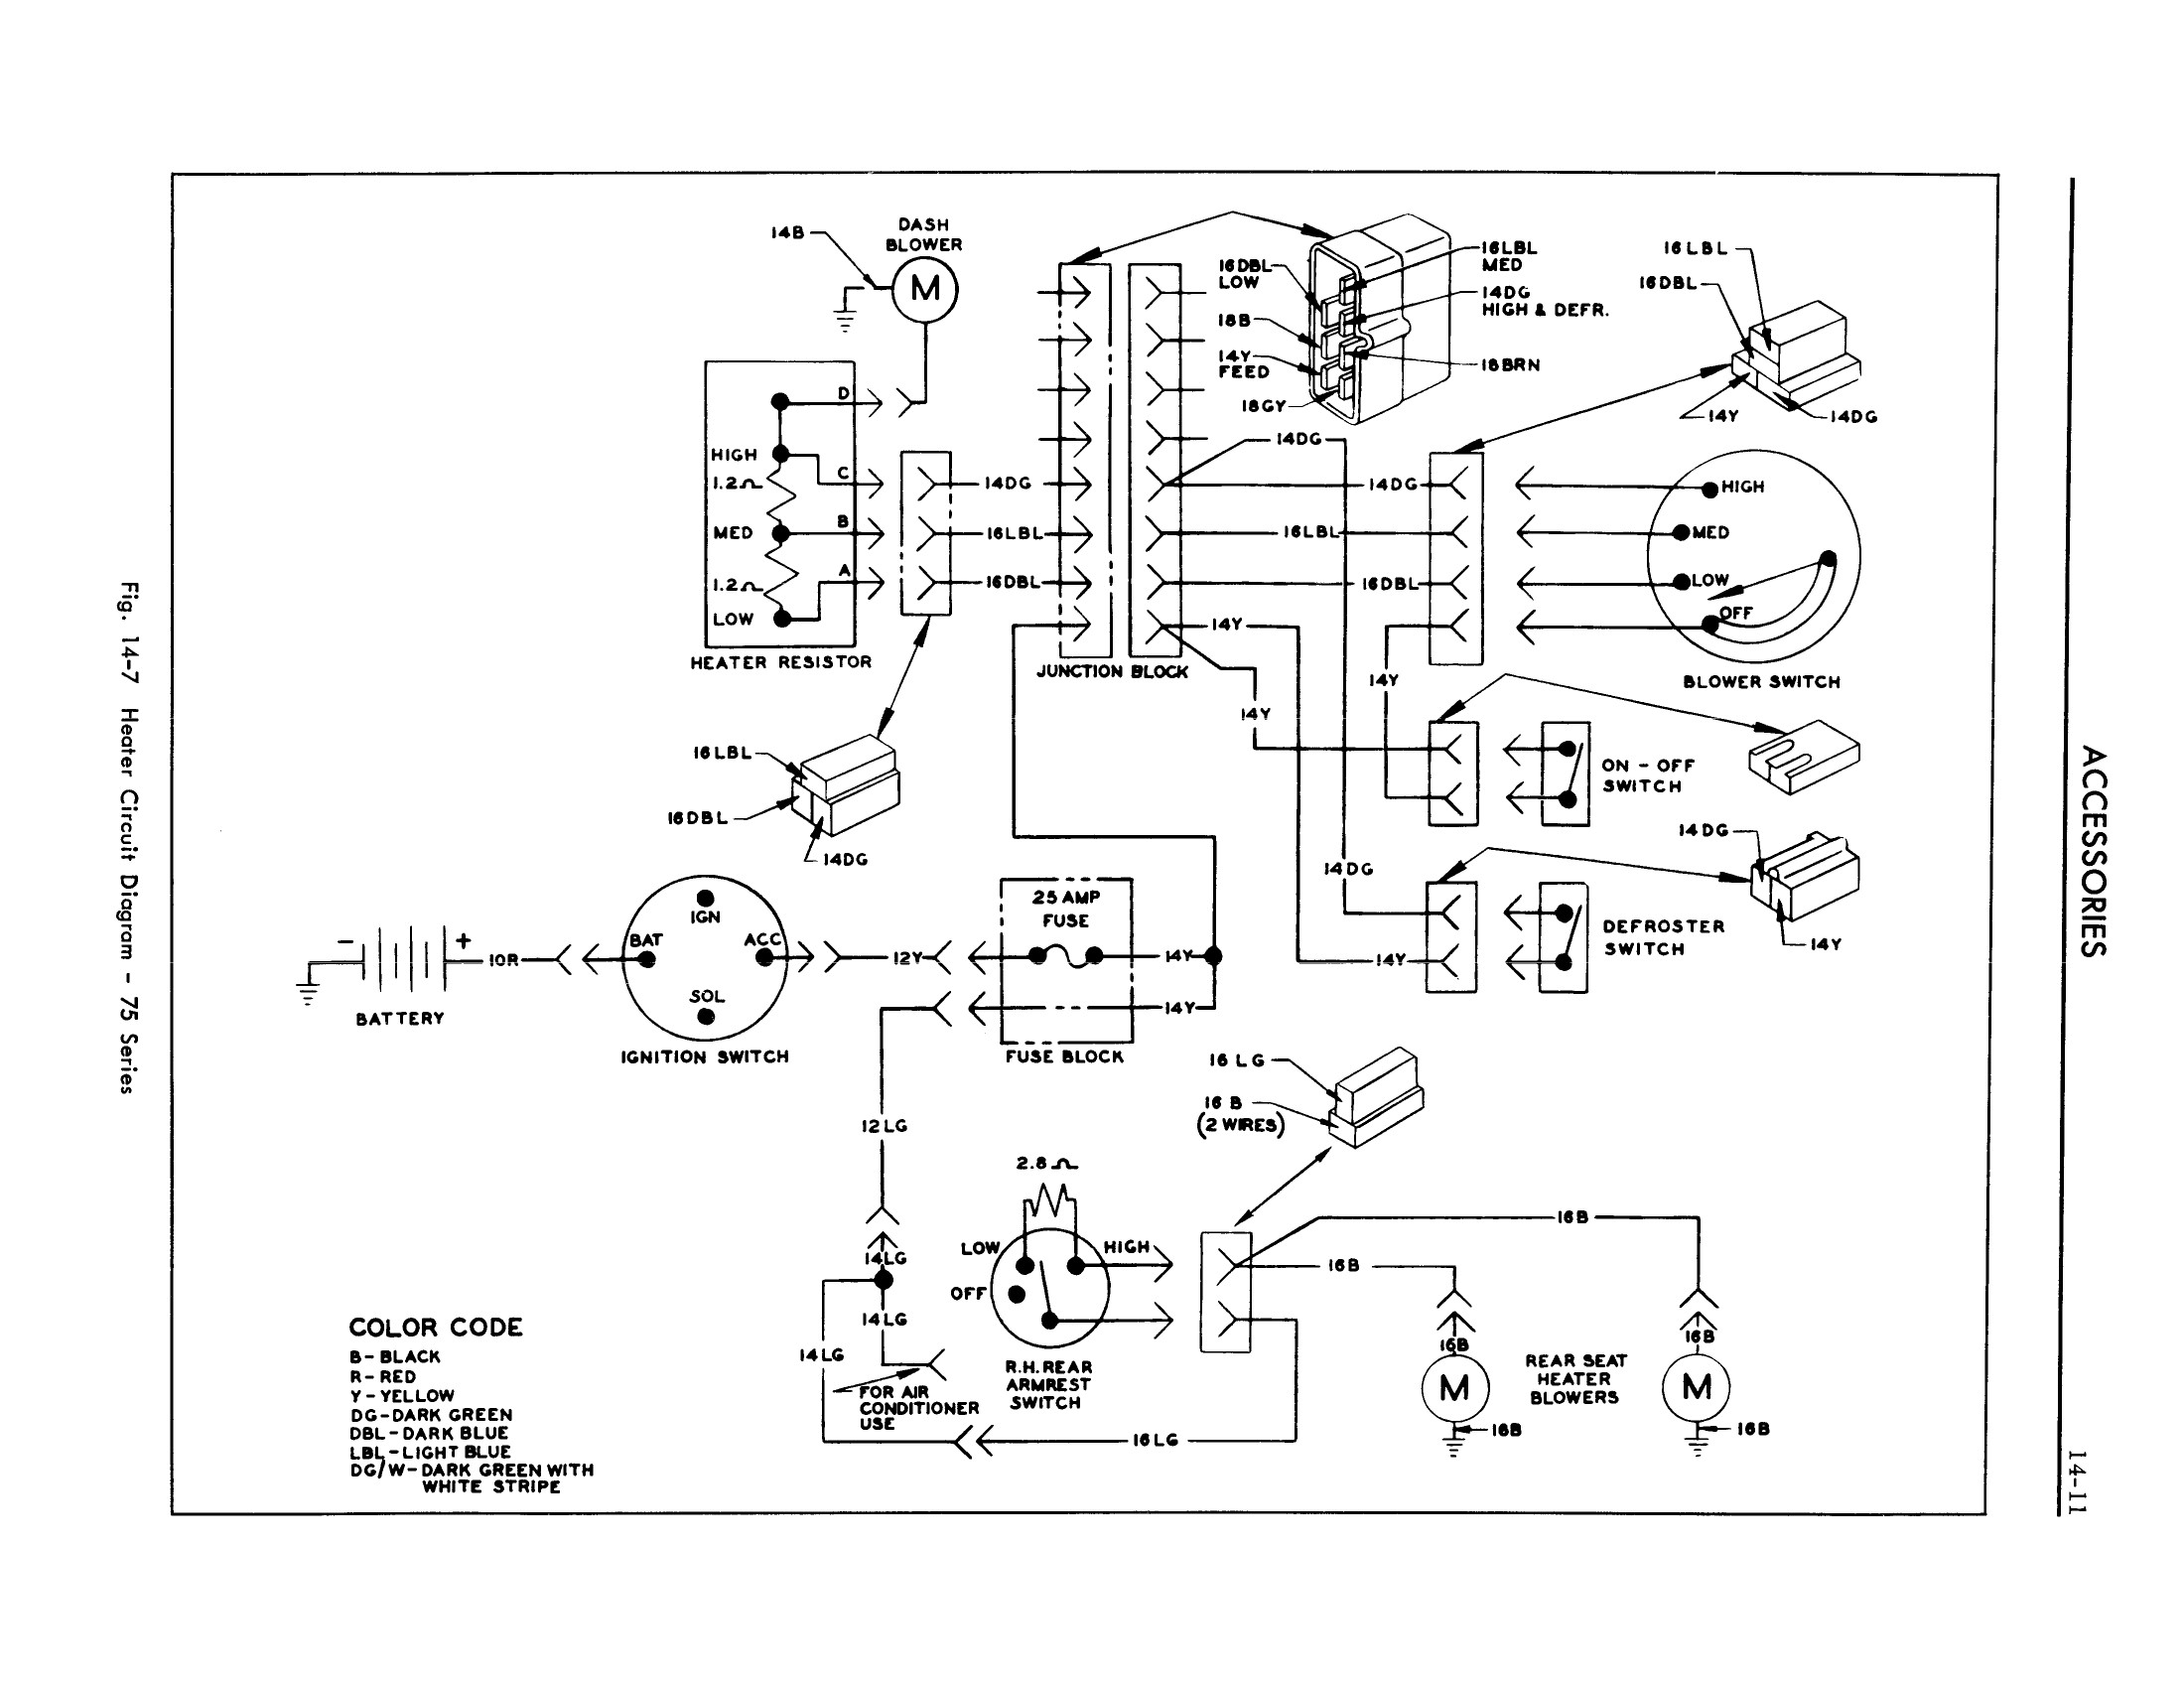 1961 Cadillac Shop Manual- Accessories Page 11 of 66